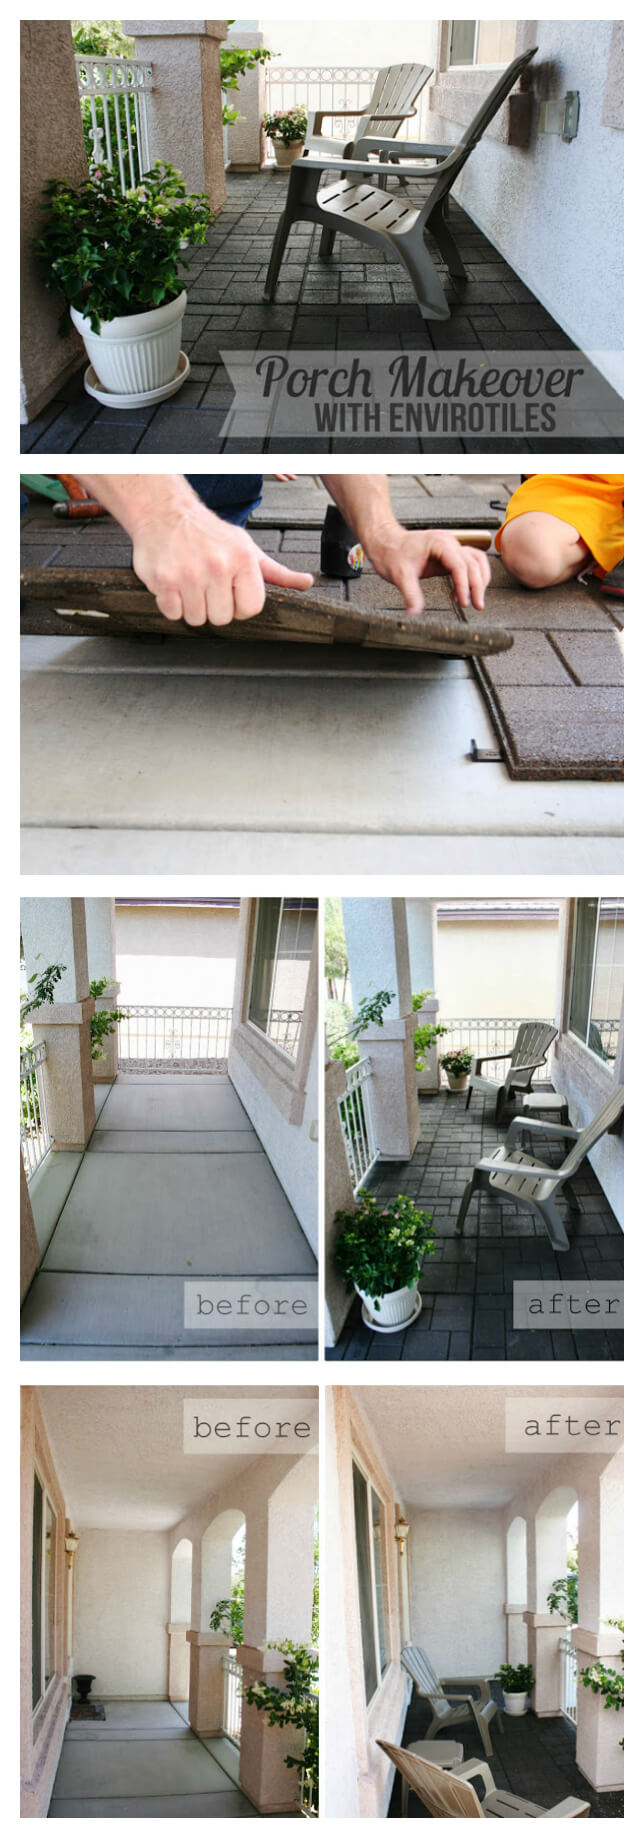 Easy Envirotile Porch Floor Transformation